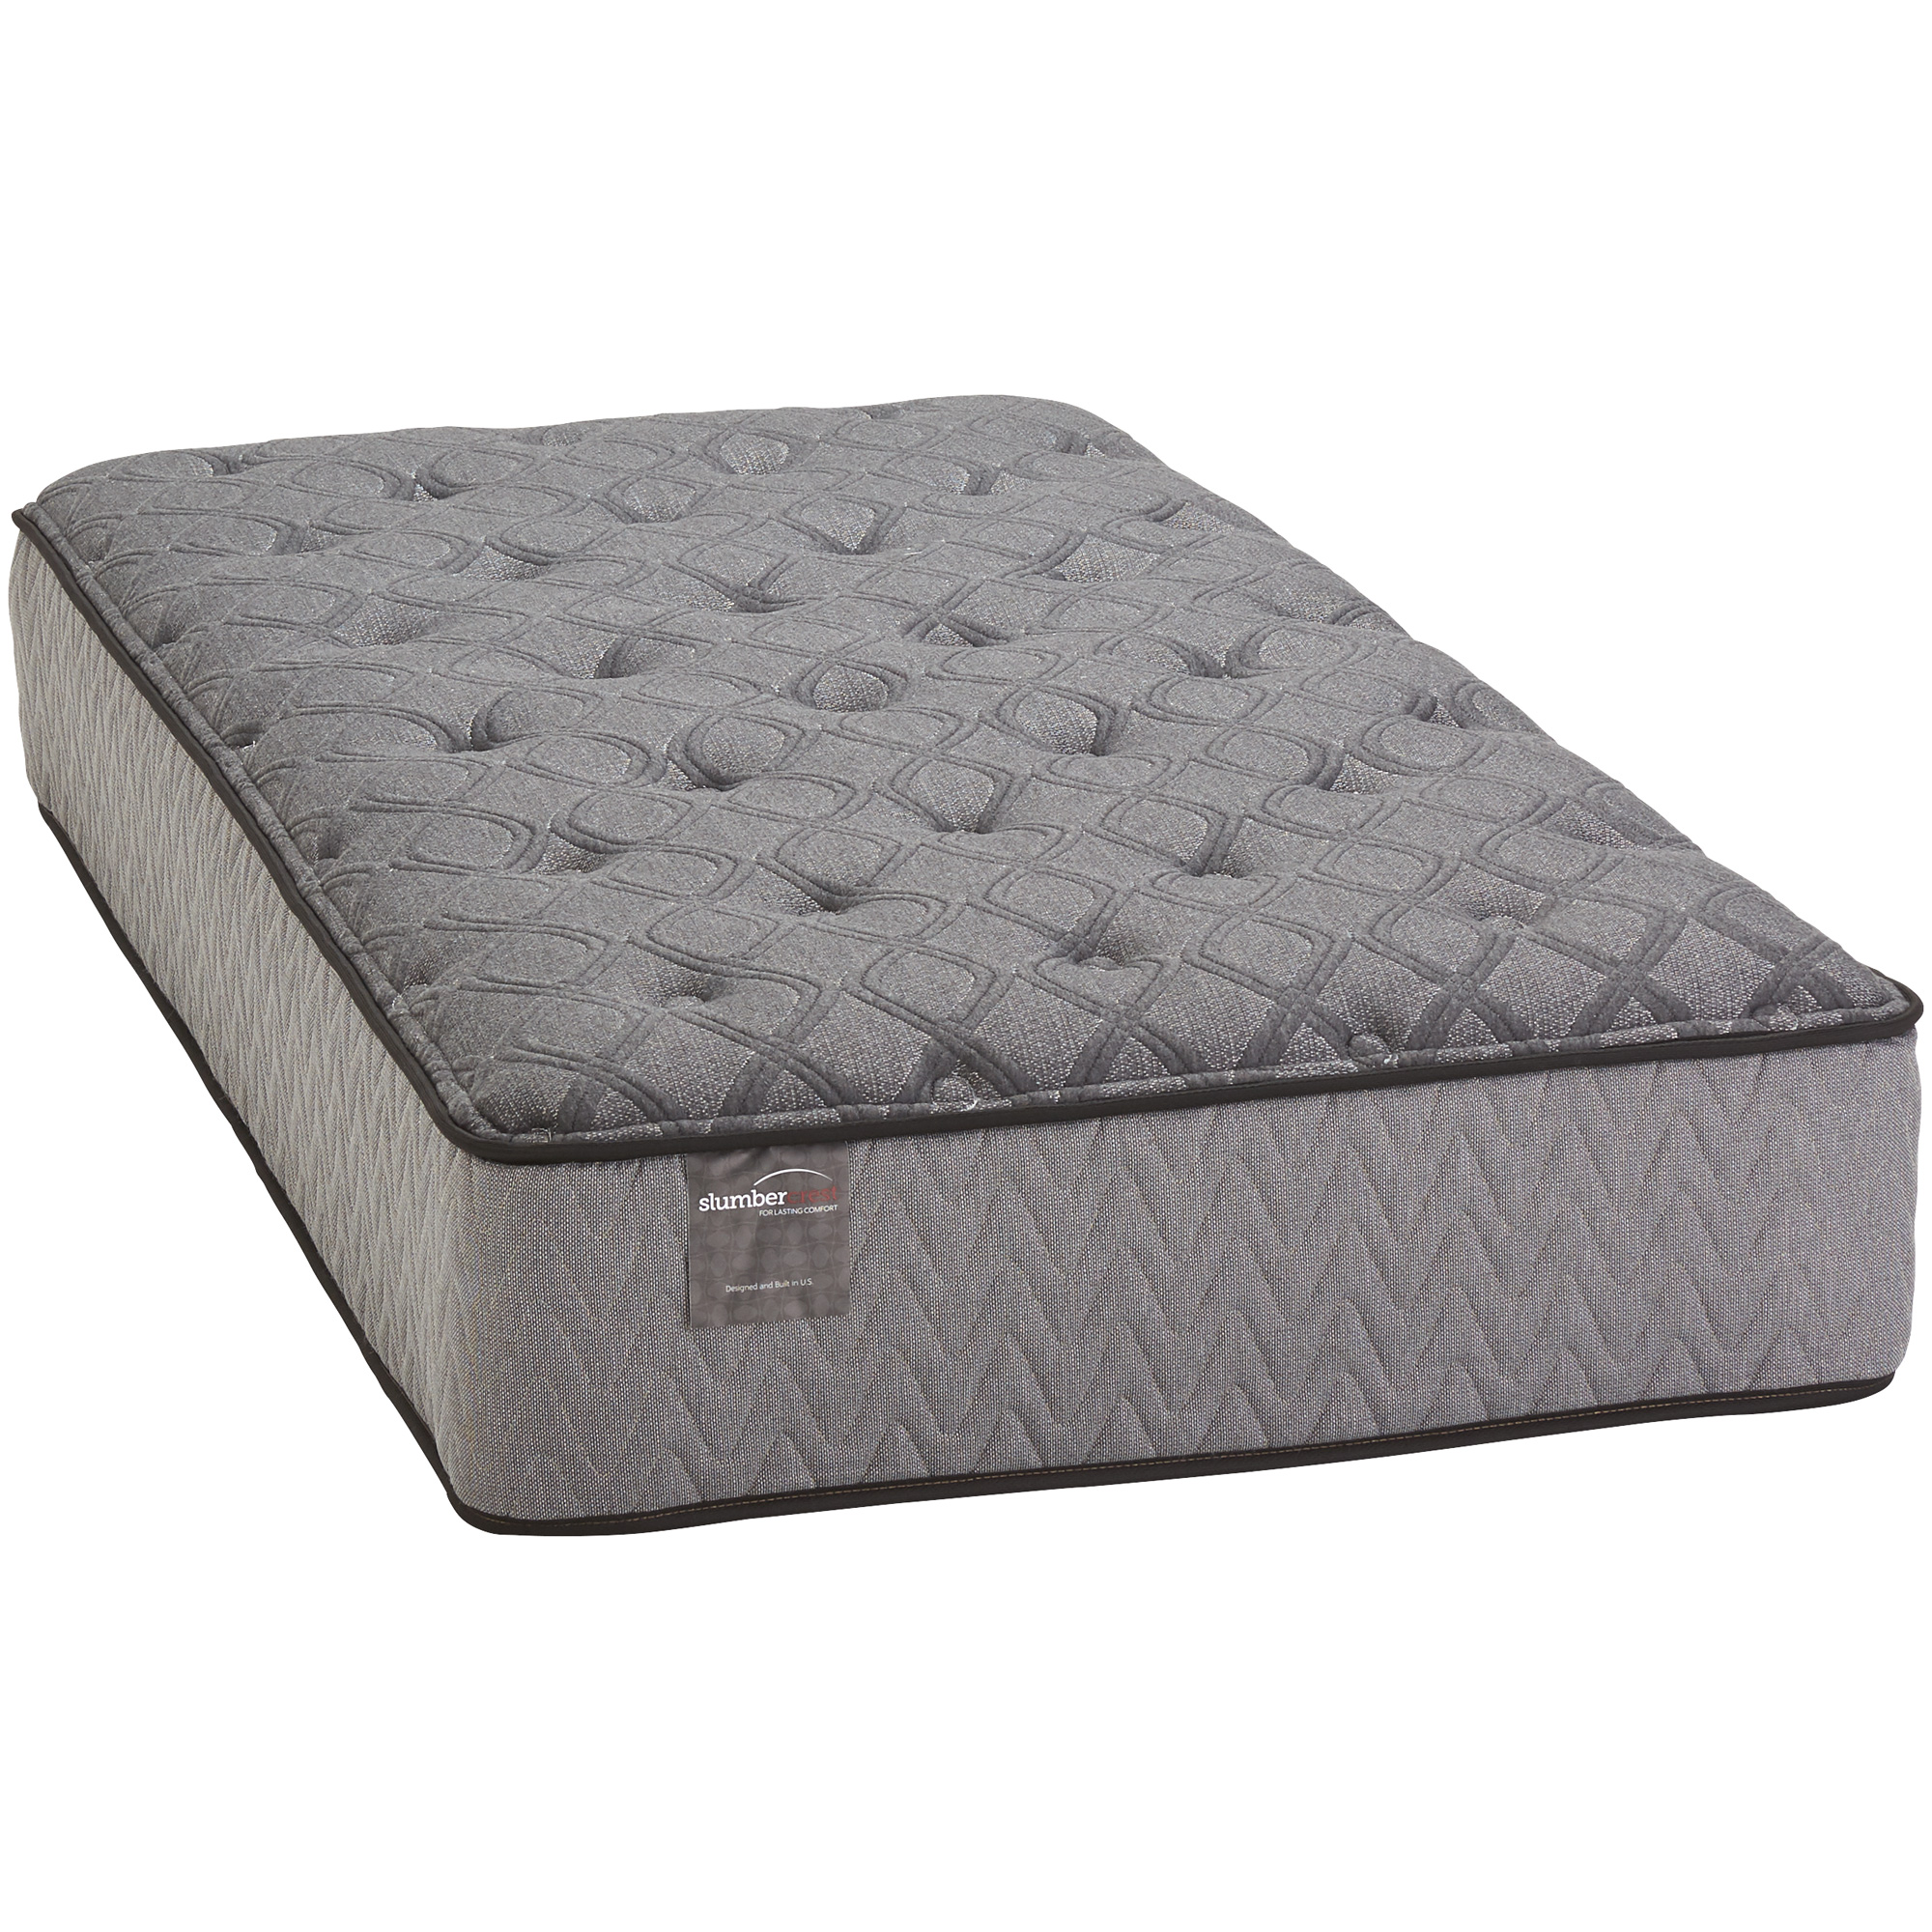 Slumbercrest Plush Twin XL Mattress